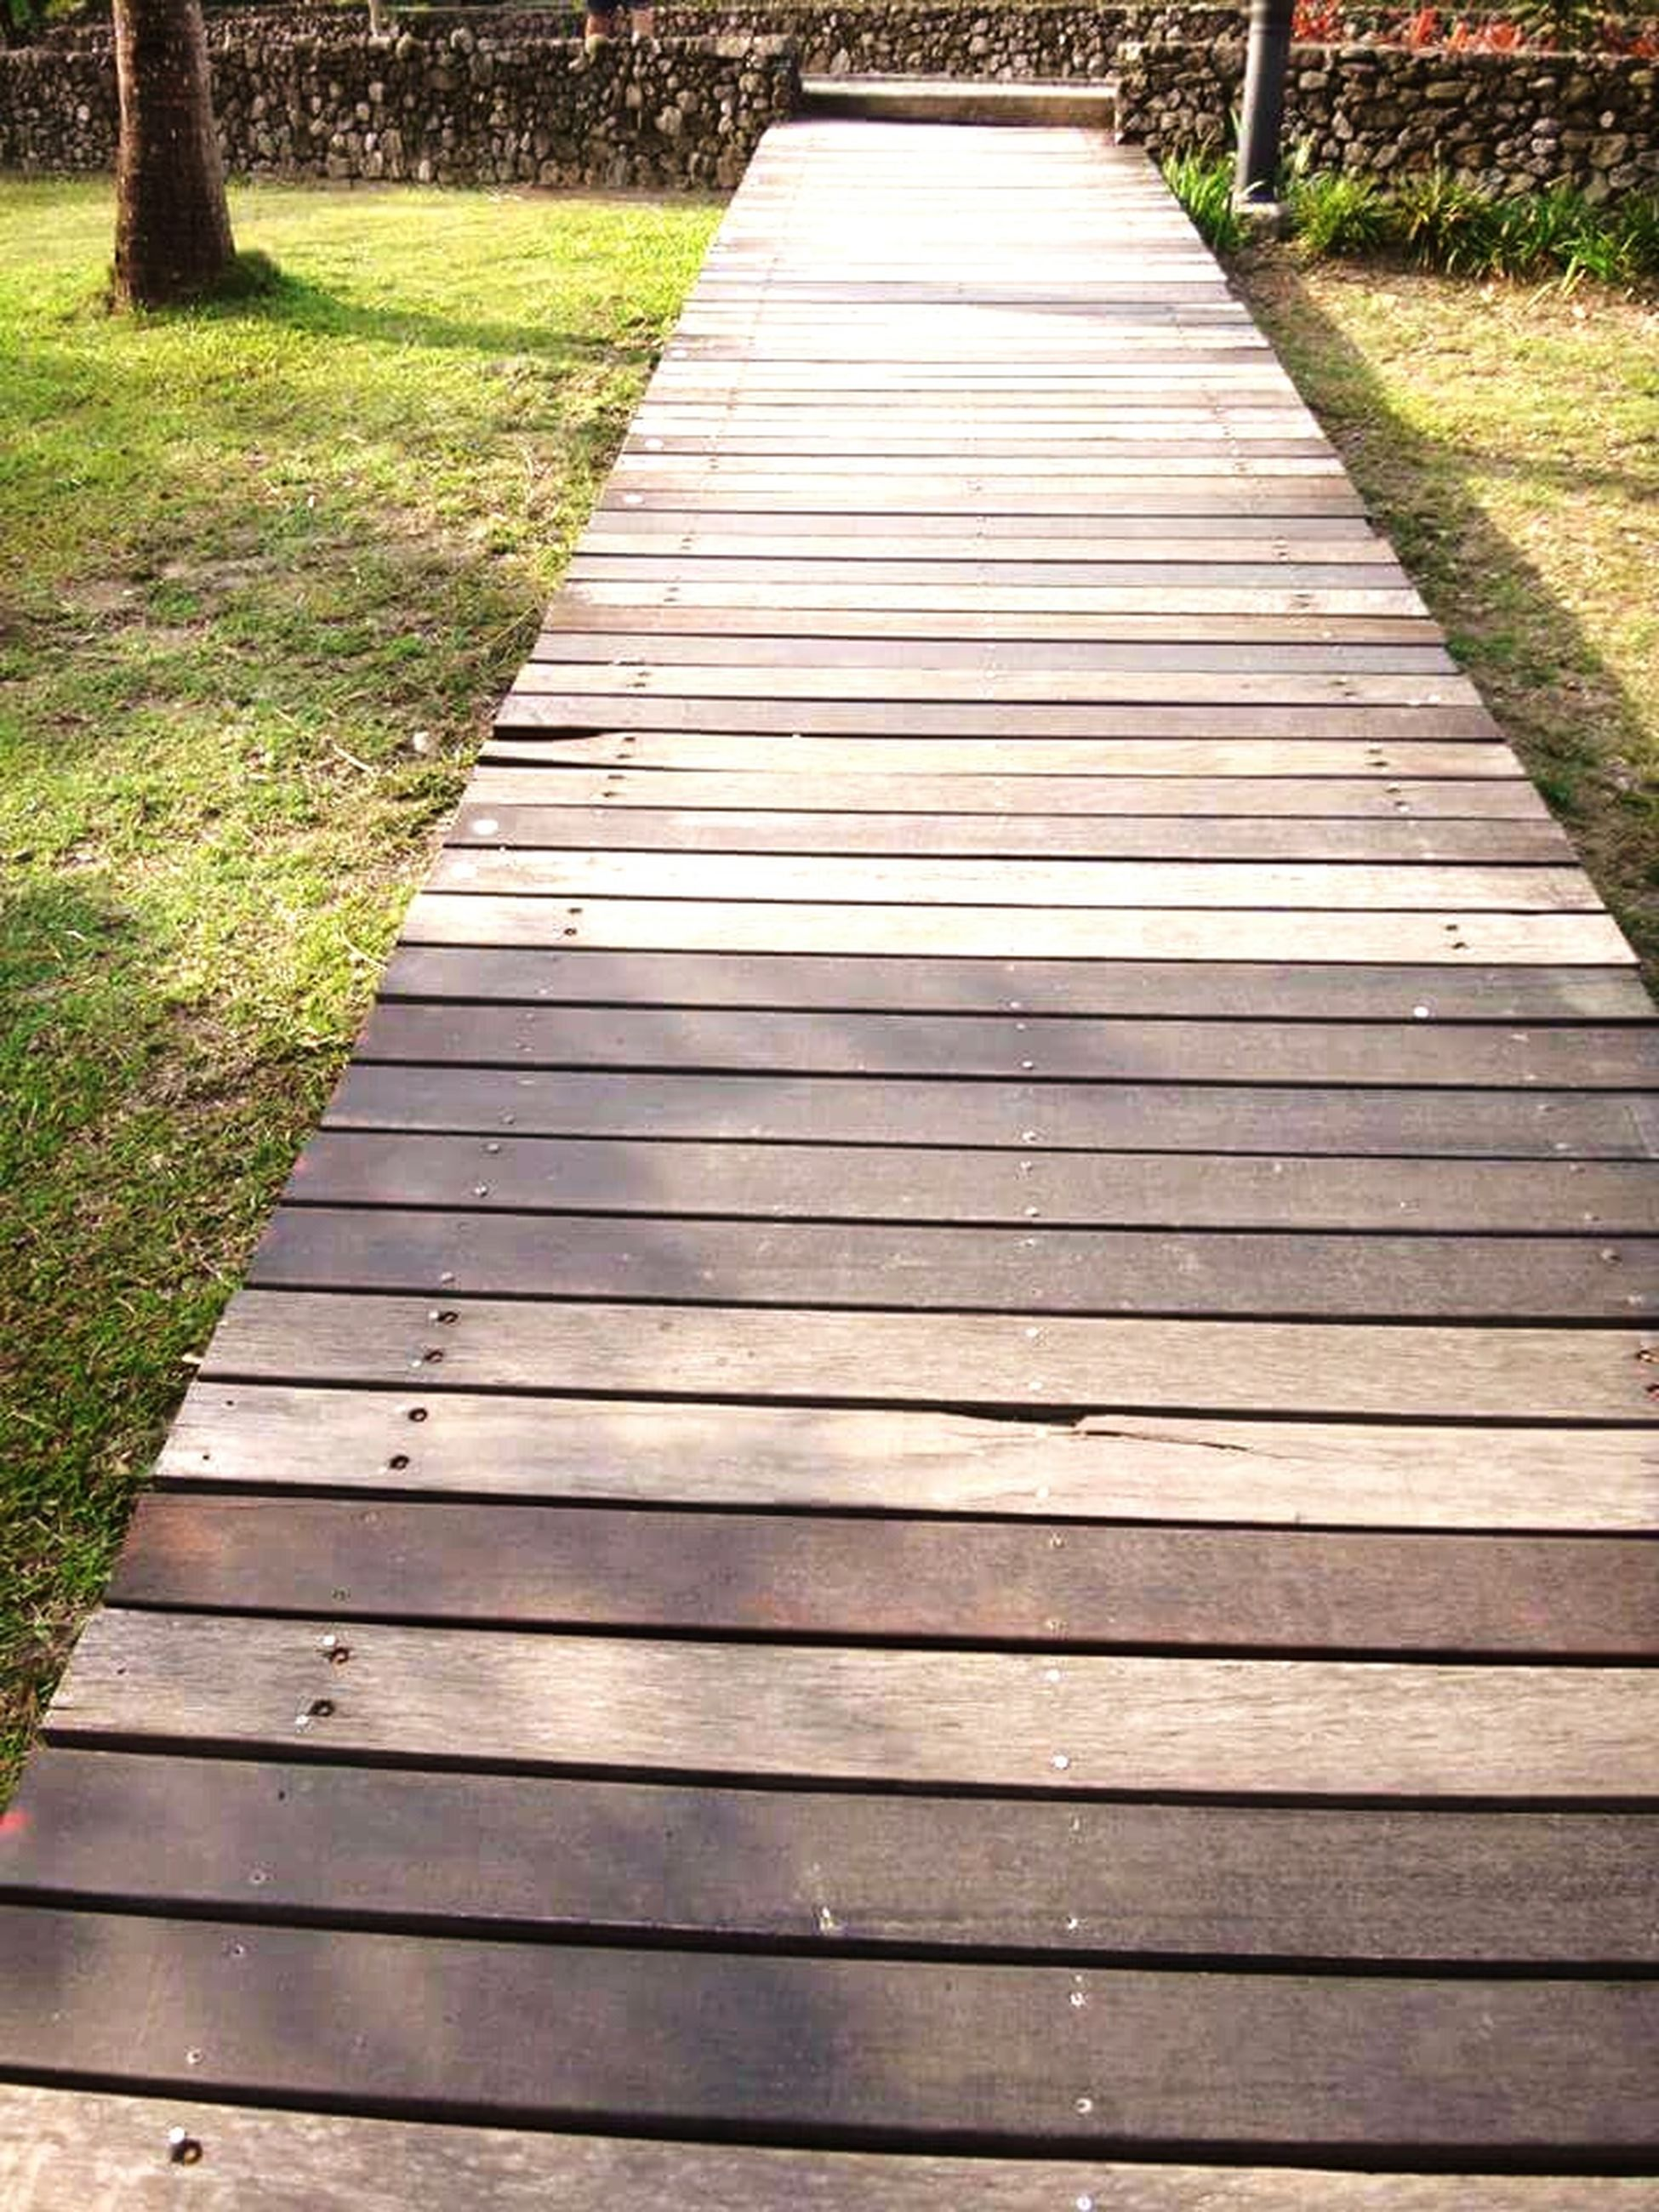 wood - material, grass, wooden, wood, boardwalk, the way forward, field, nature, plank, park - man made space, high angle view, green color, outdoors, tranquility, growth, day, bench, empty, no people, pattern